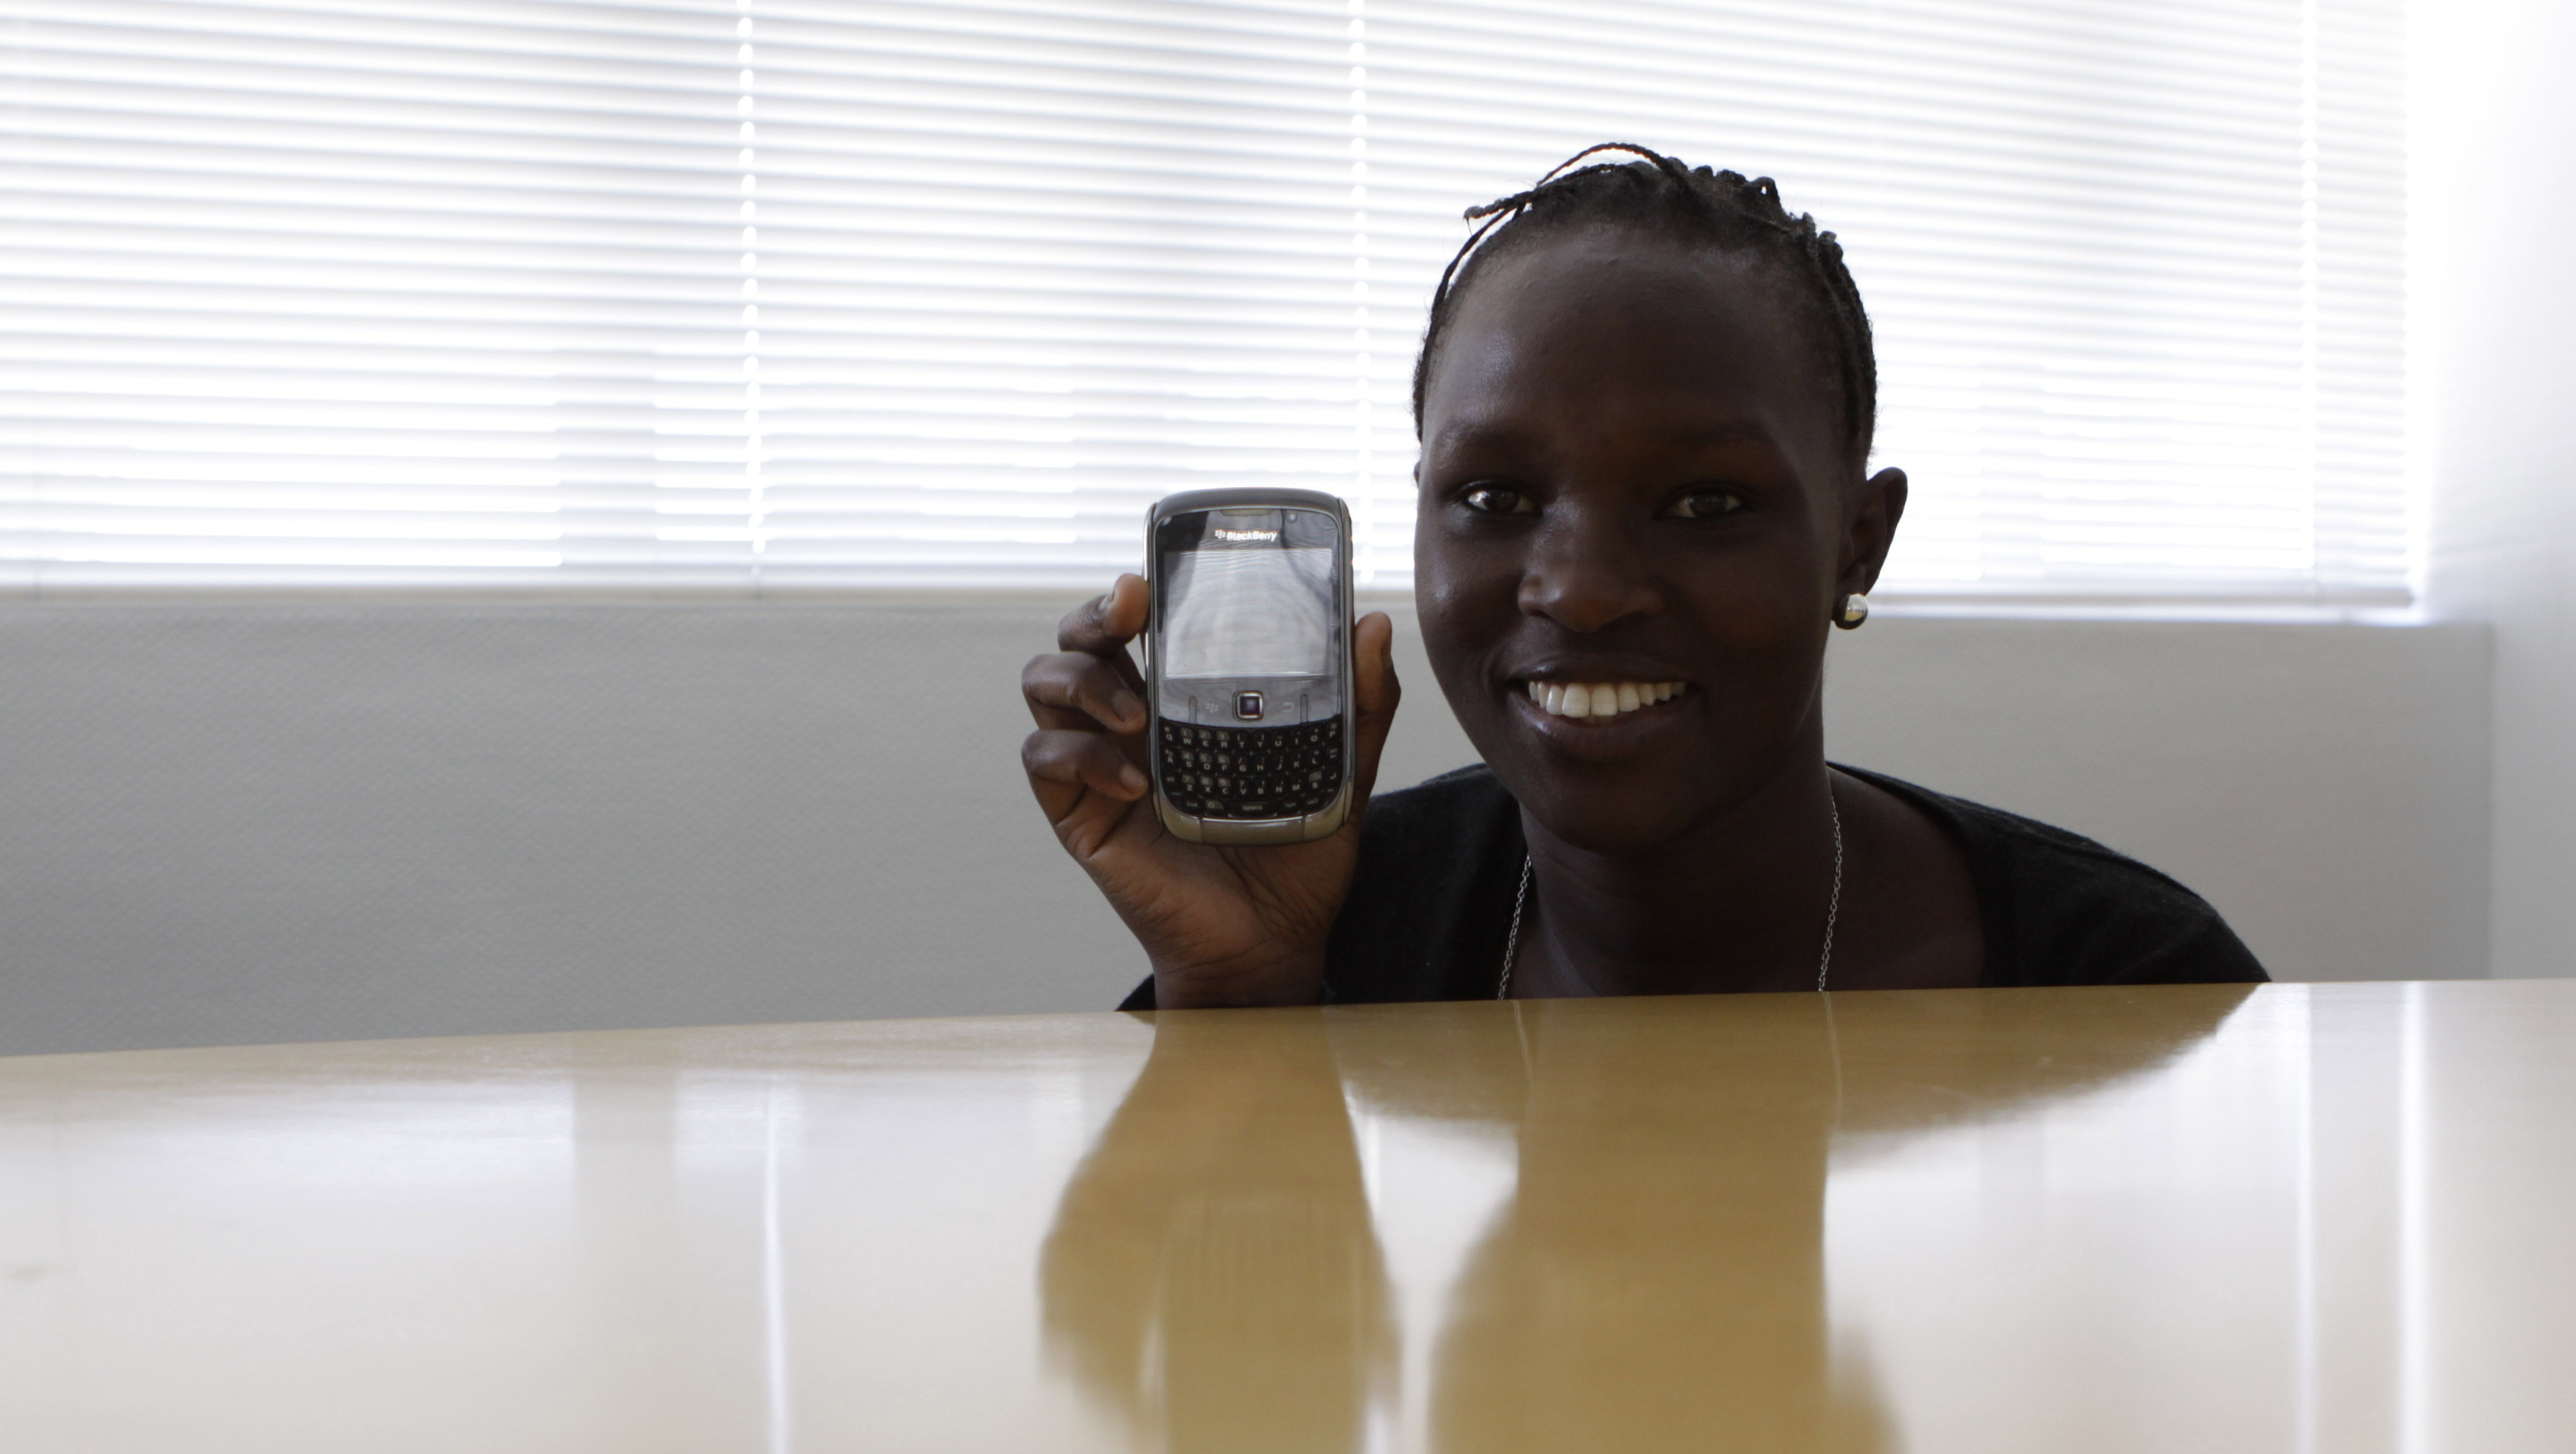 In this photo taken Tuesday, Nov. 8, 2011, Gertrude Kitongo, poses with her Blackberry mobile phone in Johannesburg. Kitongo cherishes a cell phone as a link to family and friends, and also sees it as a radio, a library, a mini cinema, a bank teller and more. (AP Photo/Denis Farrell)